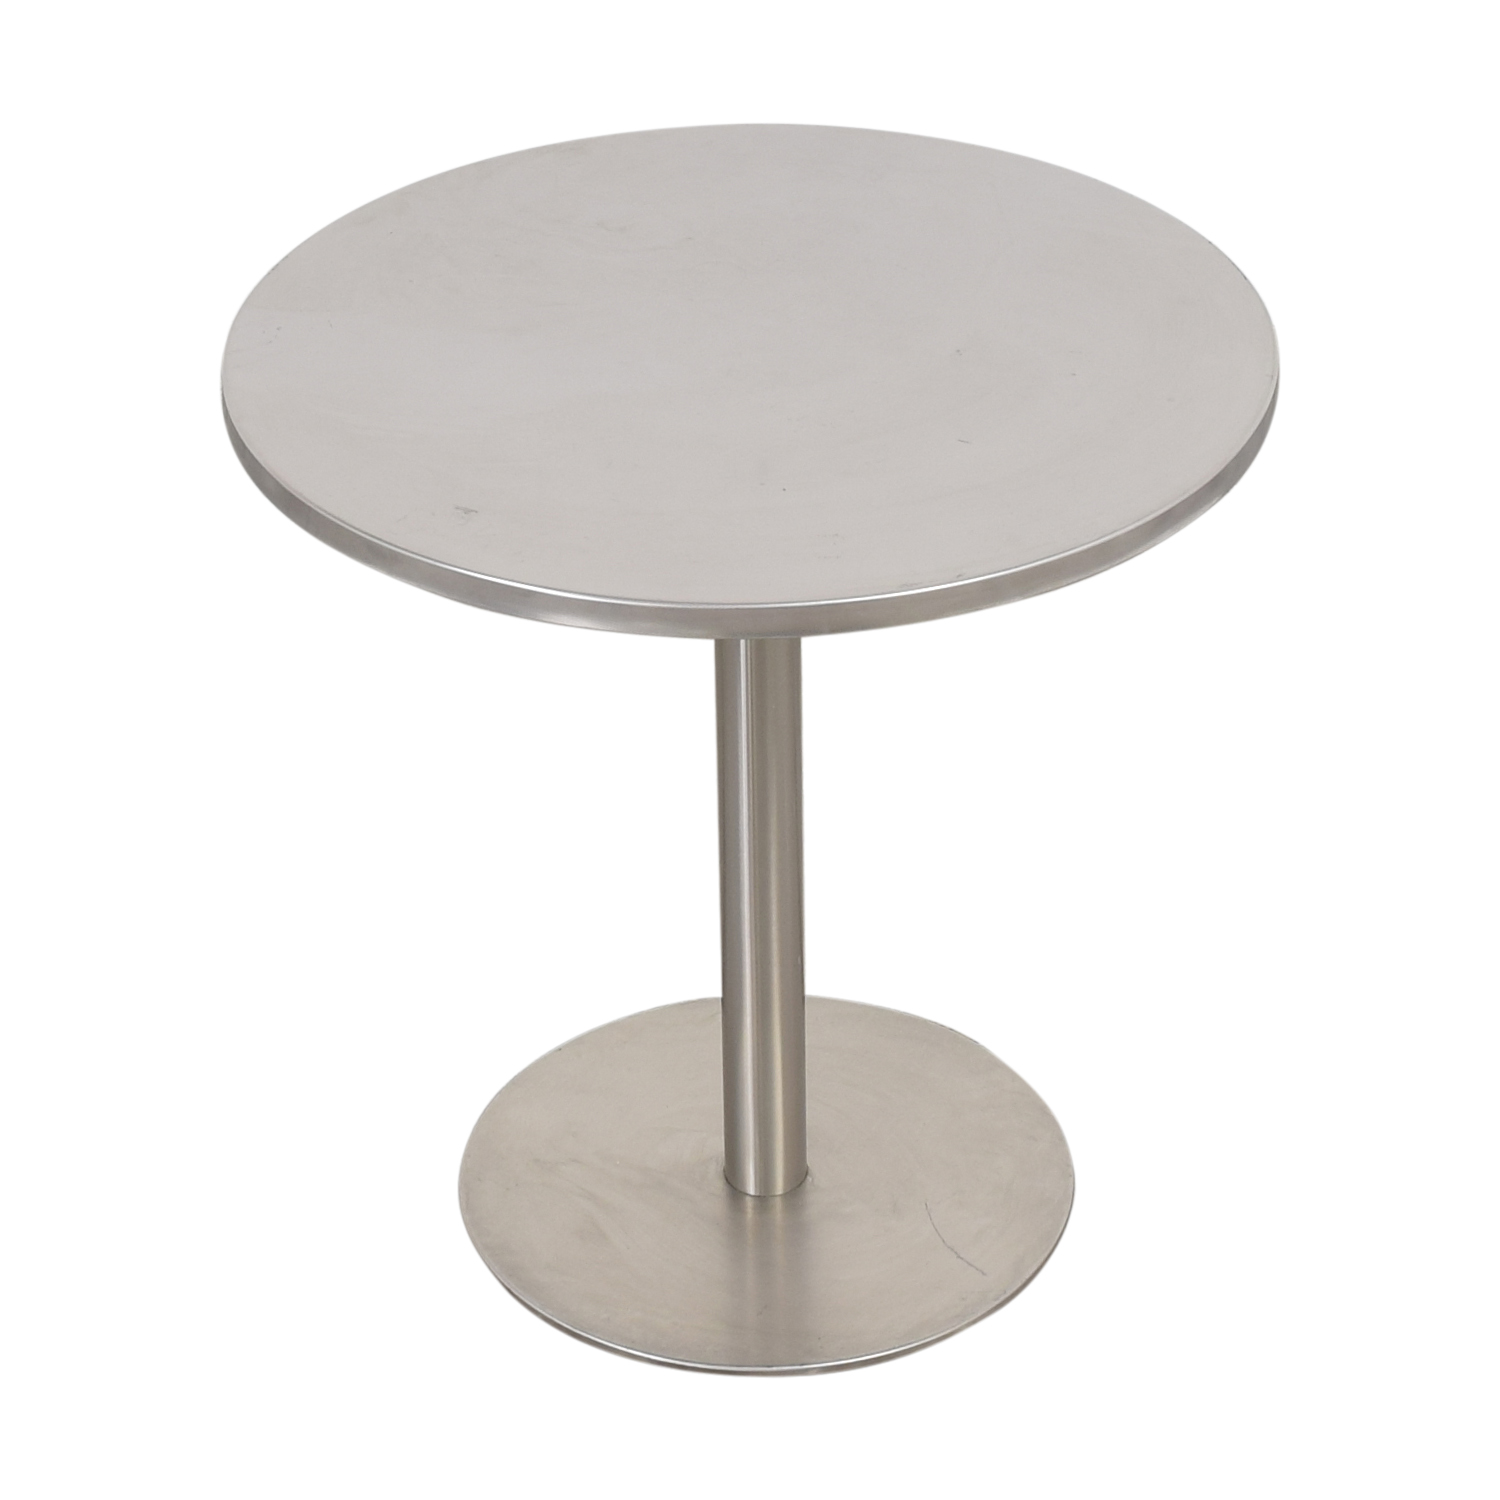 CB2 CB2 Watermark Bistro Table price